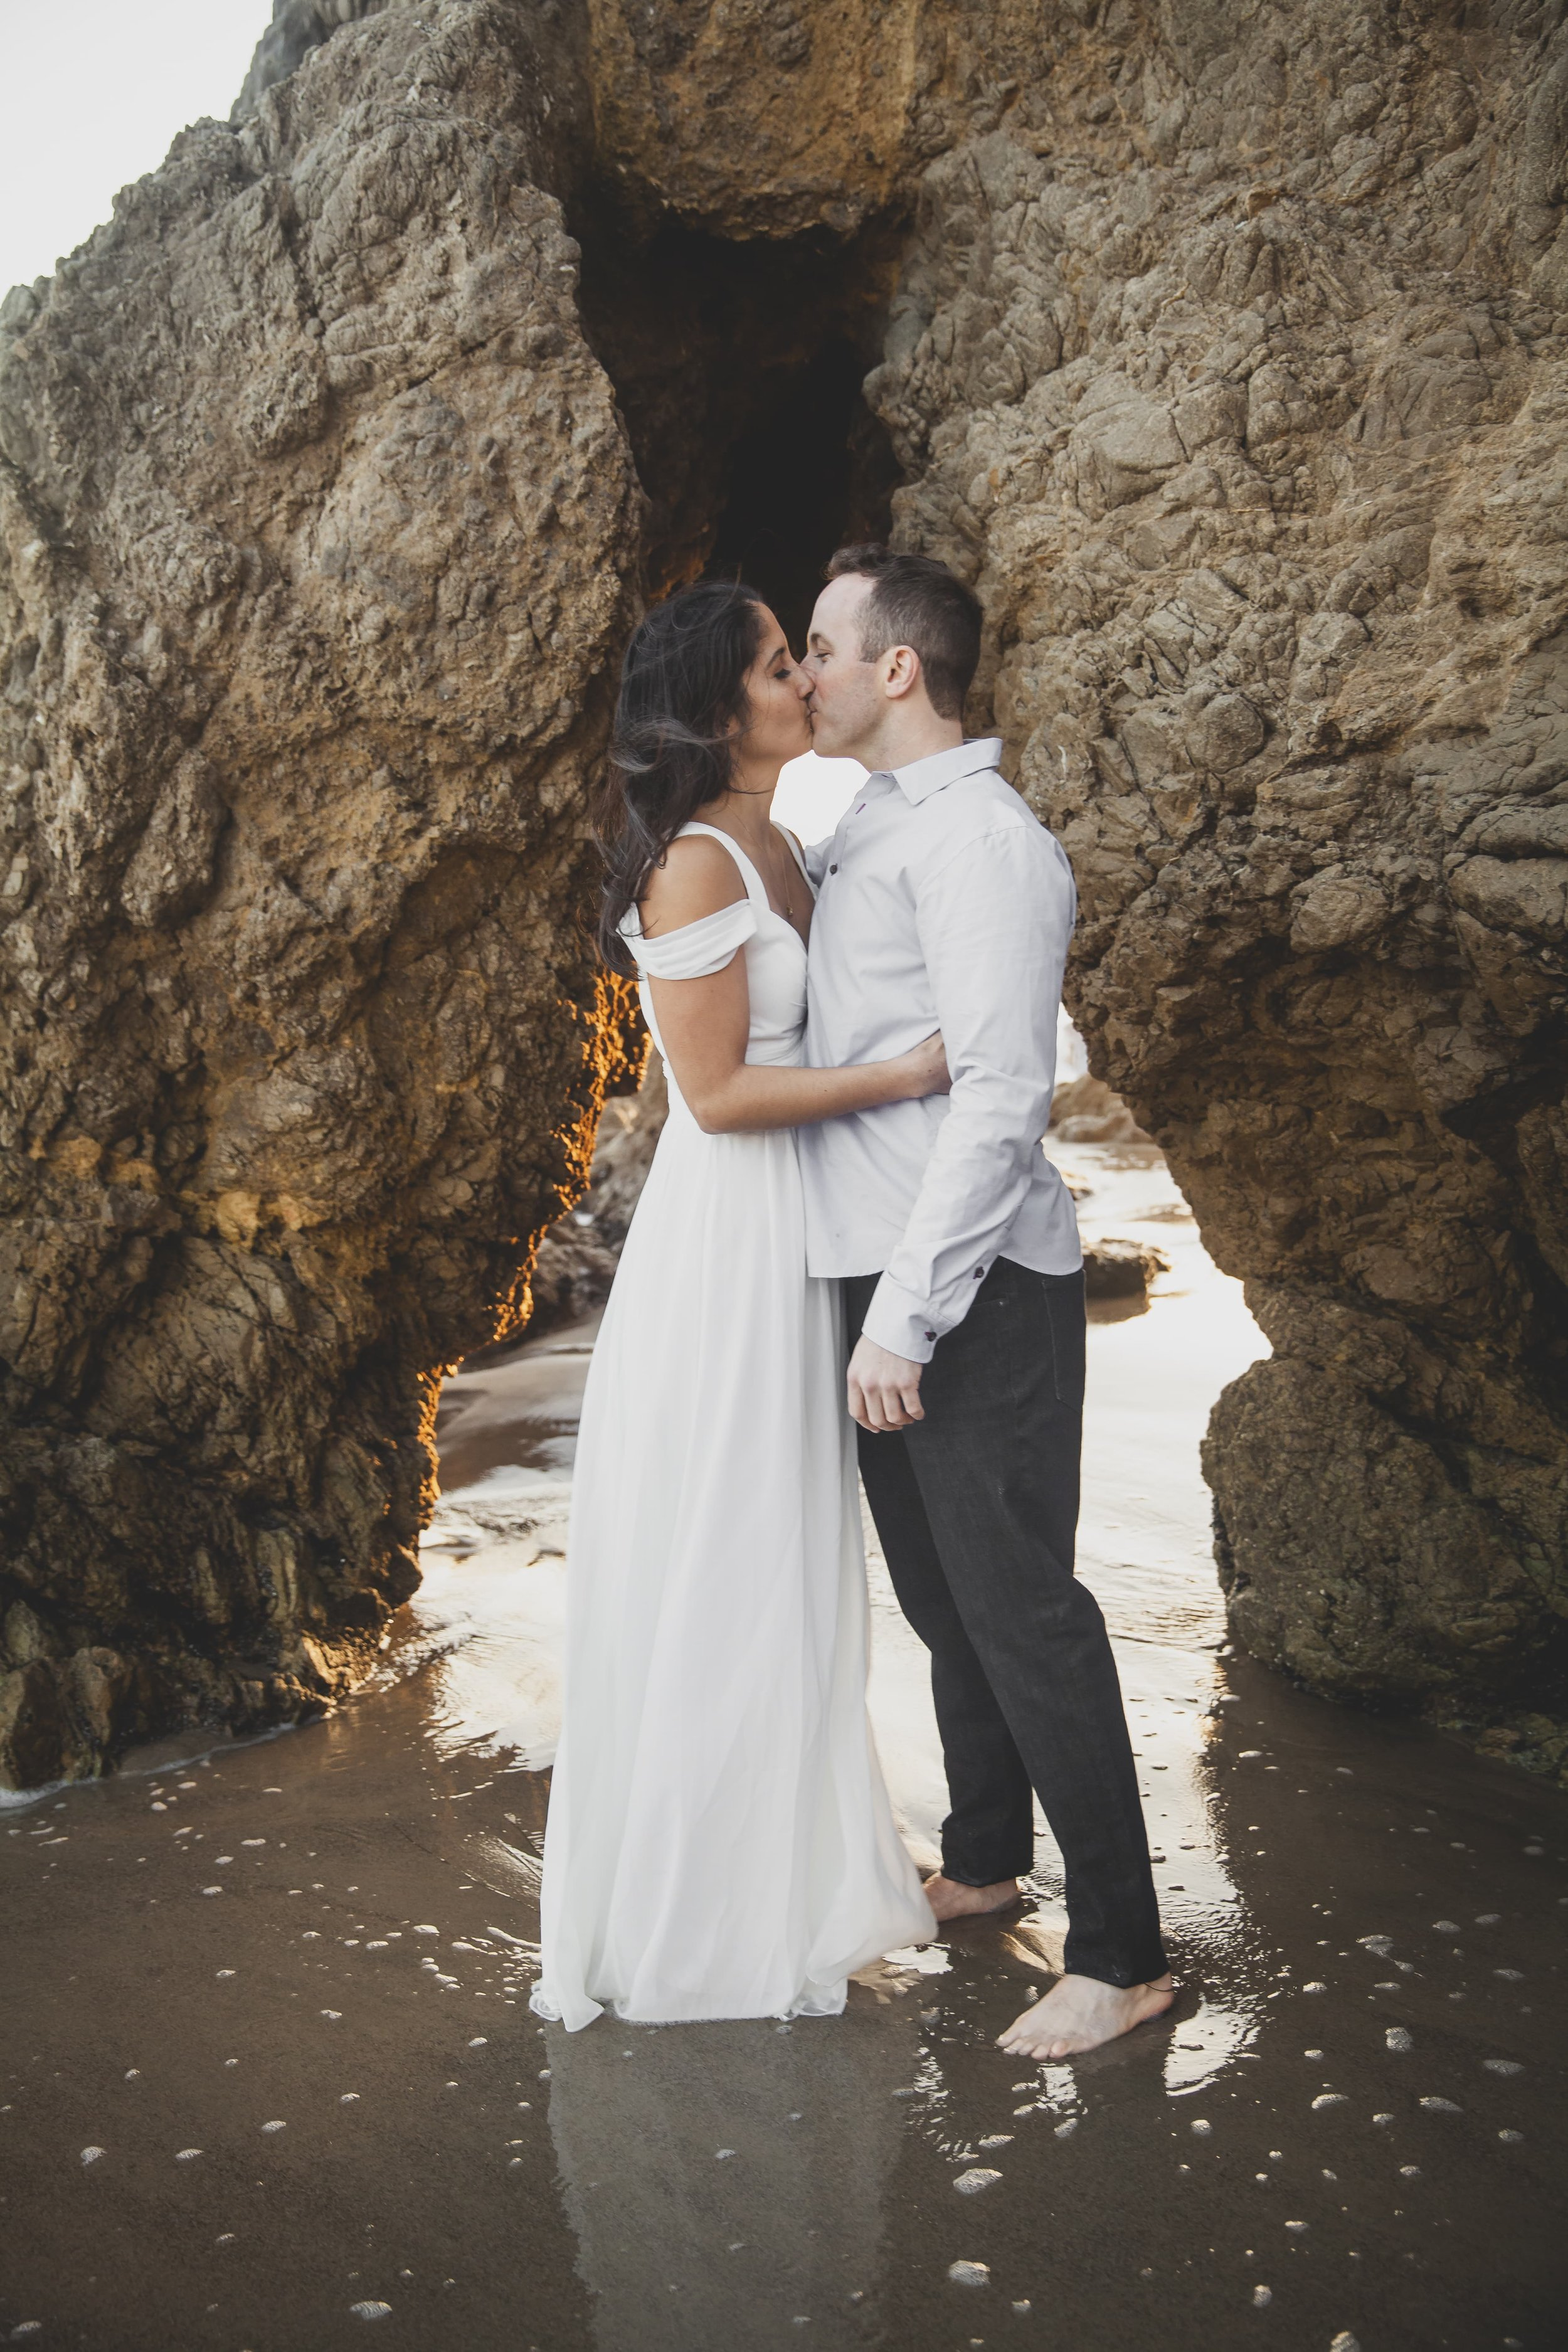 California Engagement Photography - Engaged couple kissing in the water while showered with rays of sunlight.